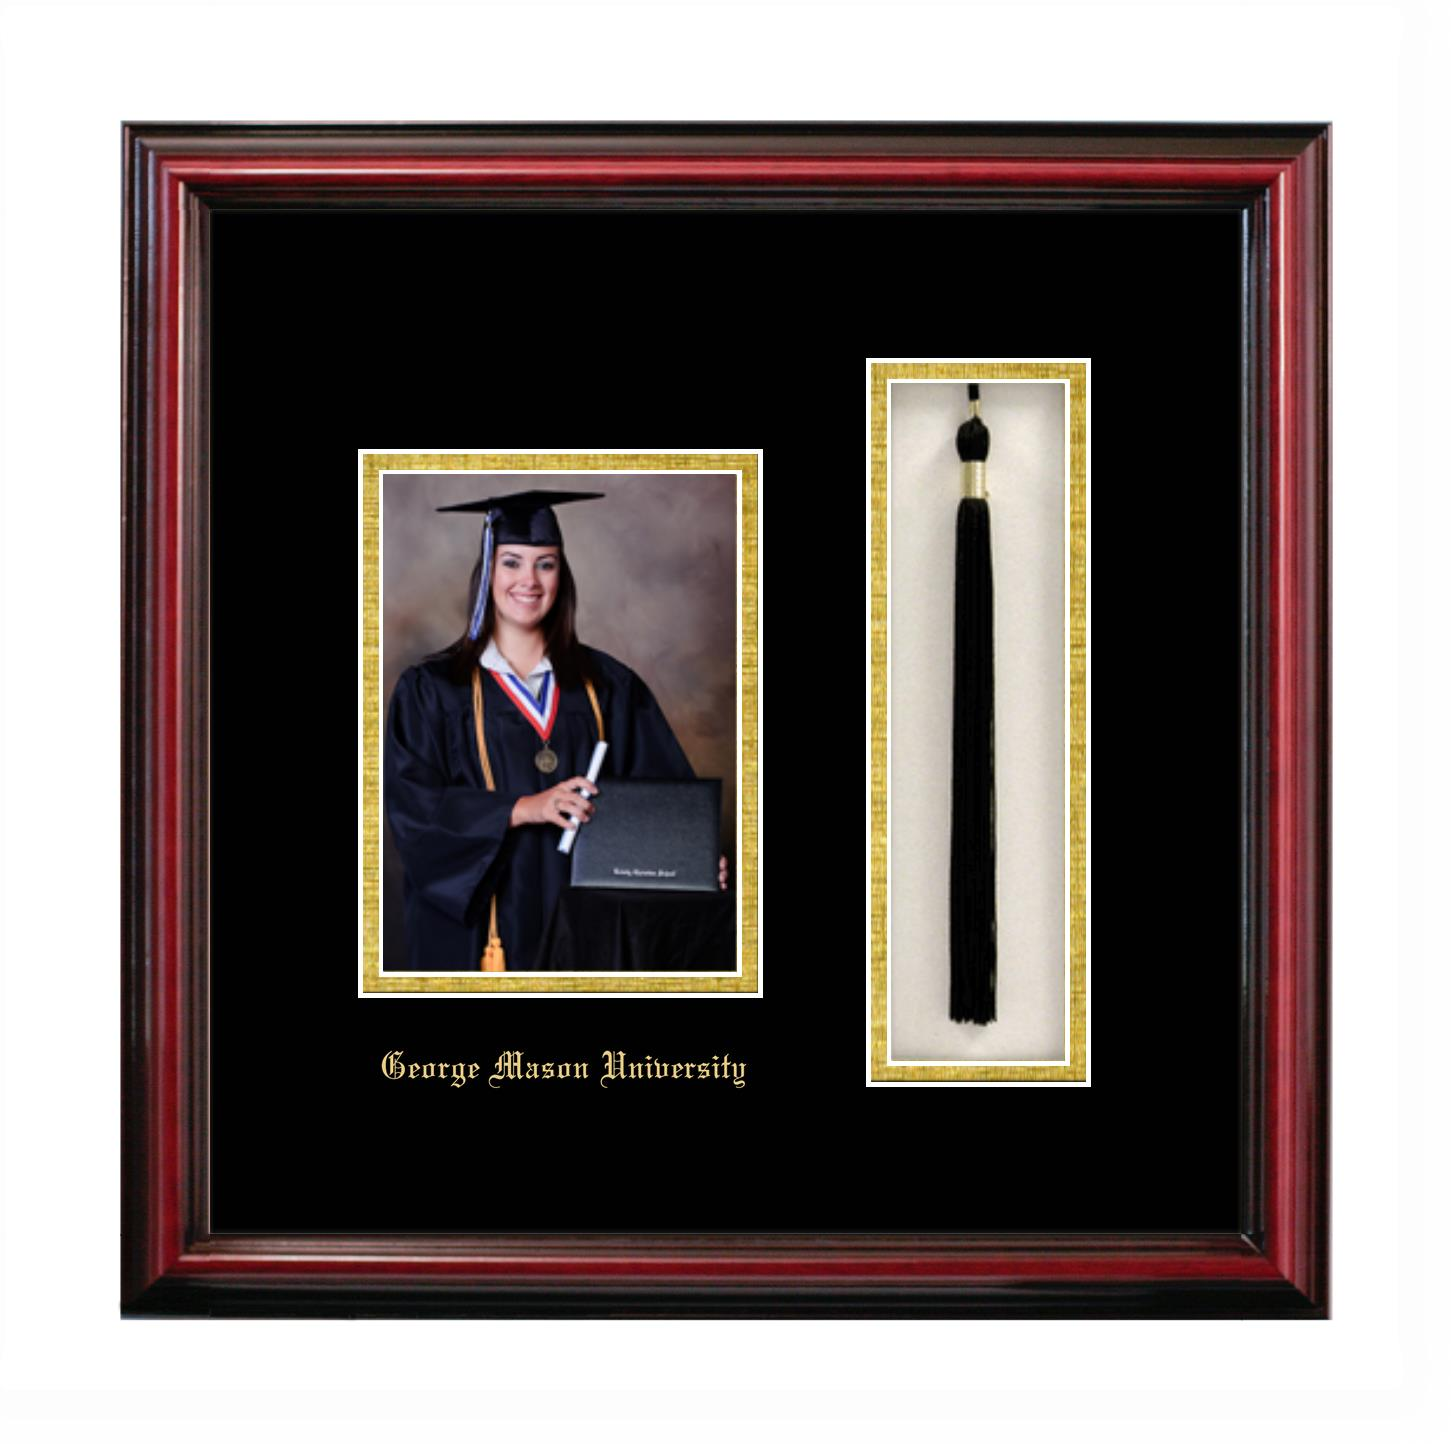 George Mason University 5x7 Portrait With Tassel Box Frame In Petite Cherry With Black Gold Mats